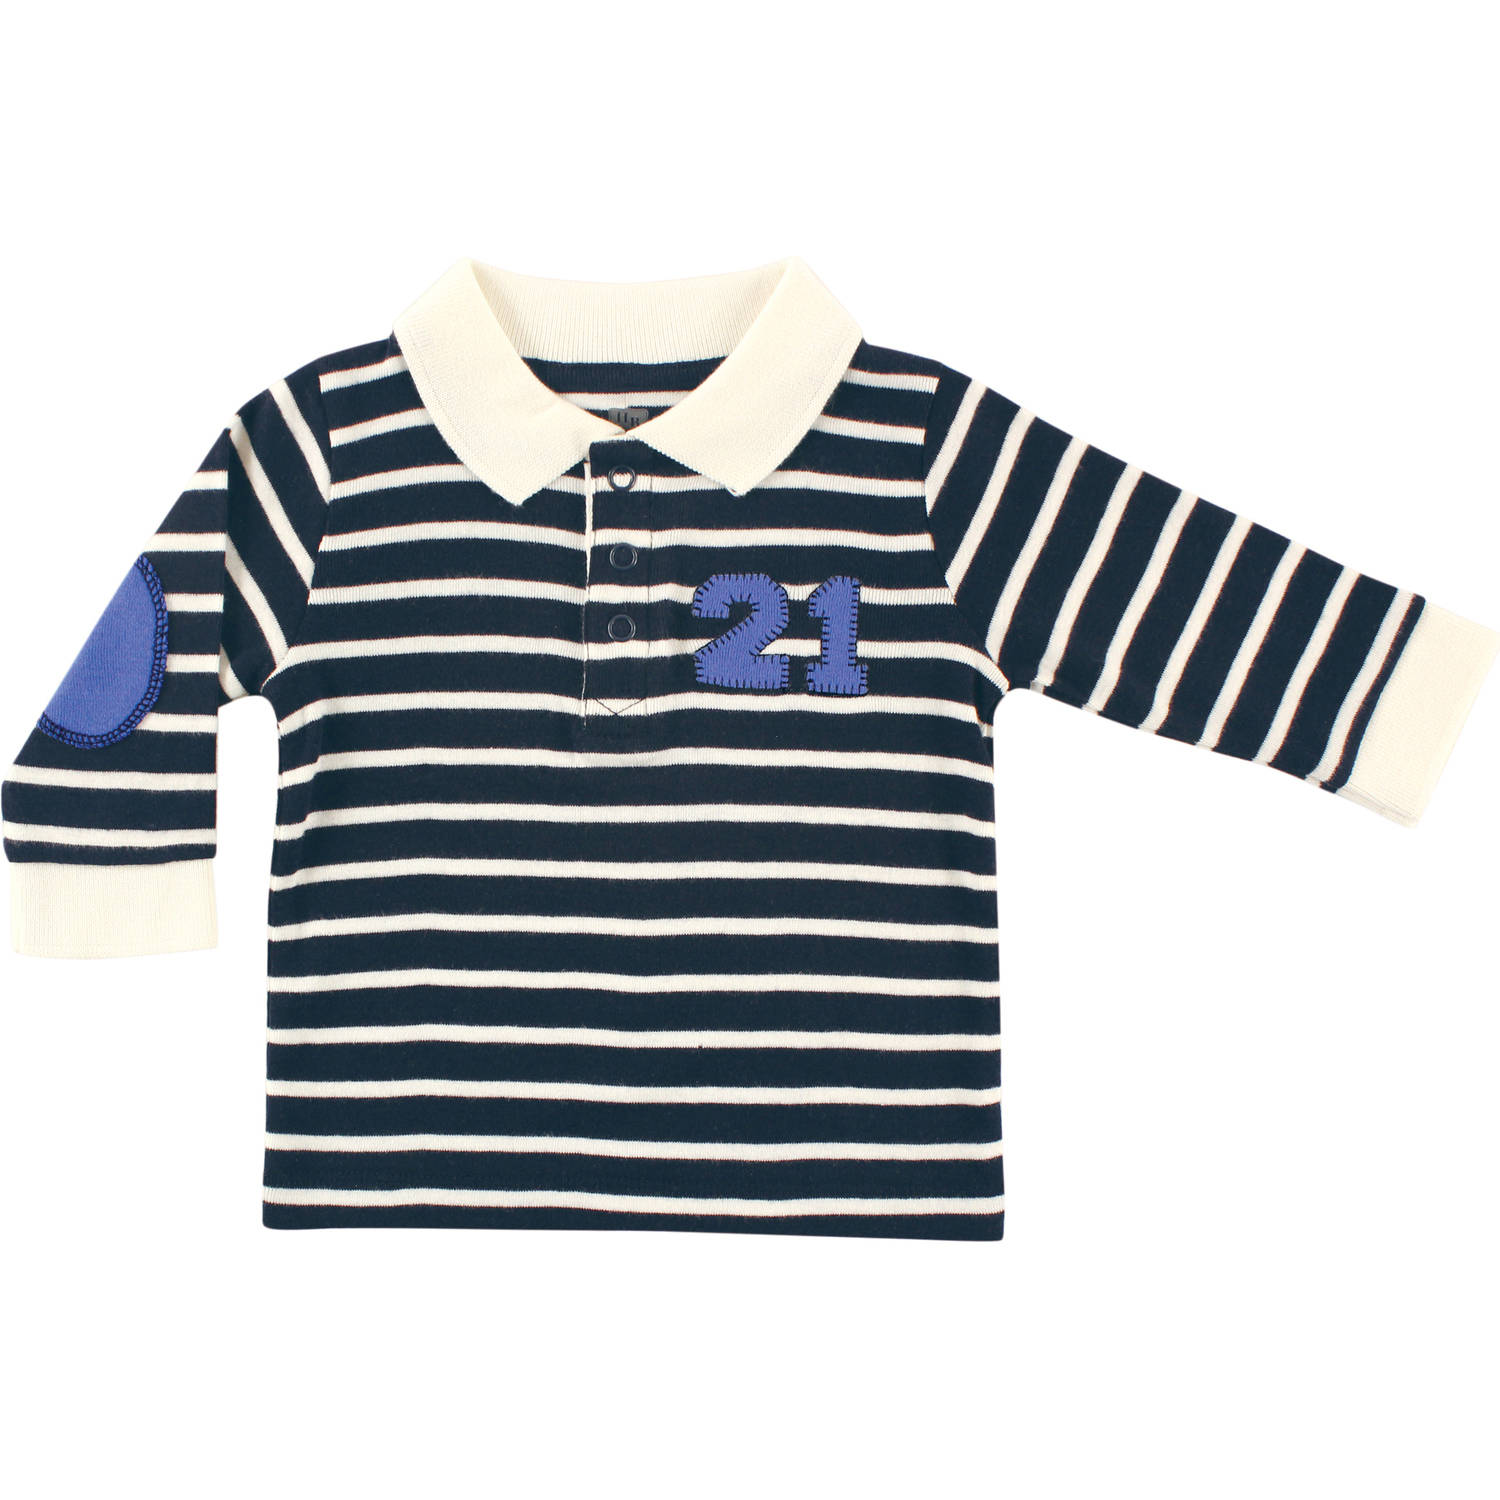 Hudson Baby Newborn Baby Boys Long Sleeve Rugby Shirt - Twenty One